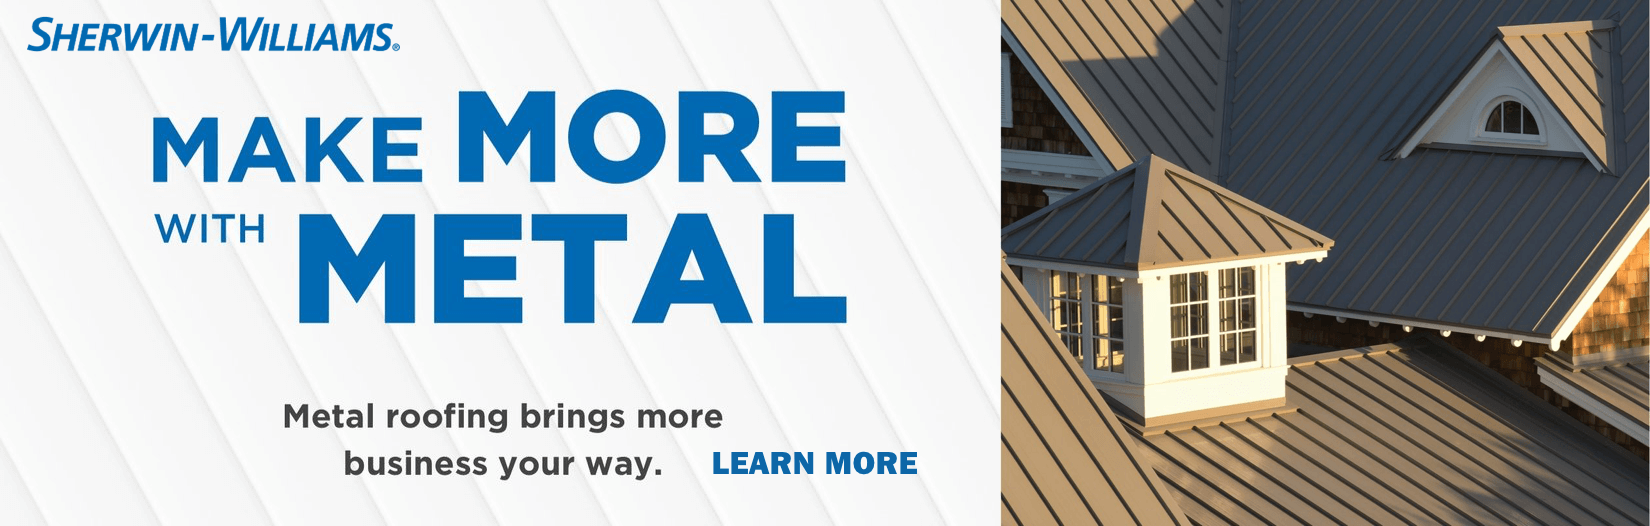 Sherwin Williams - Make More With Metal